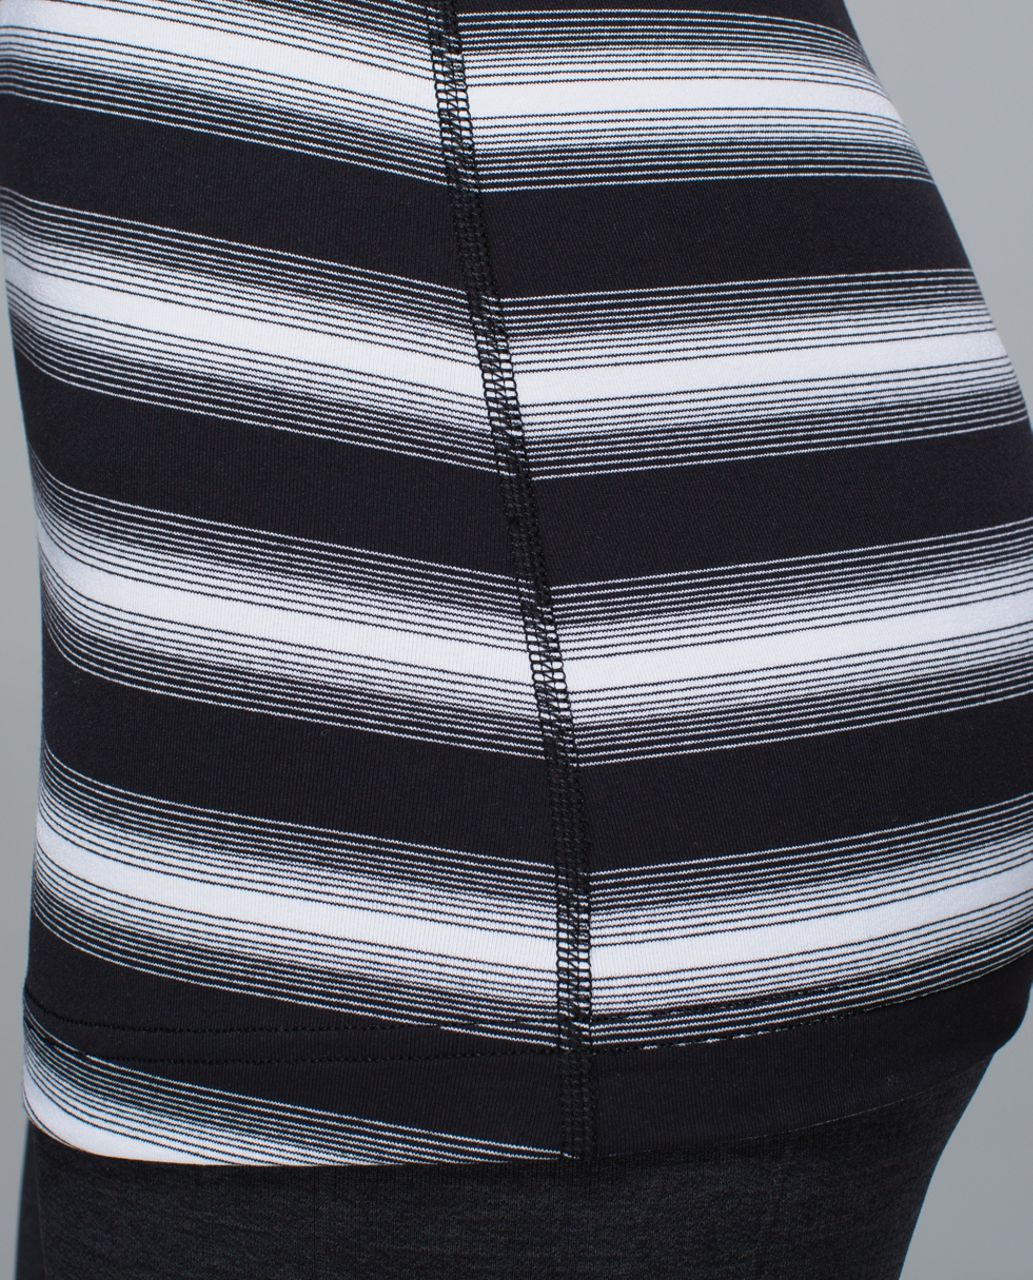 Lululemon Cool Racerback - Capilano Stripe Black White